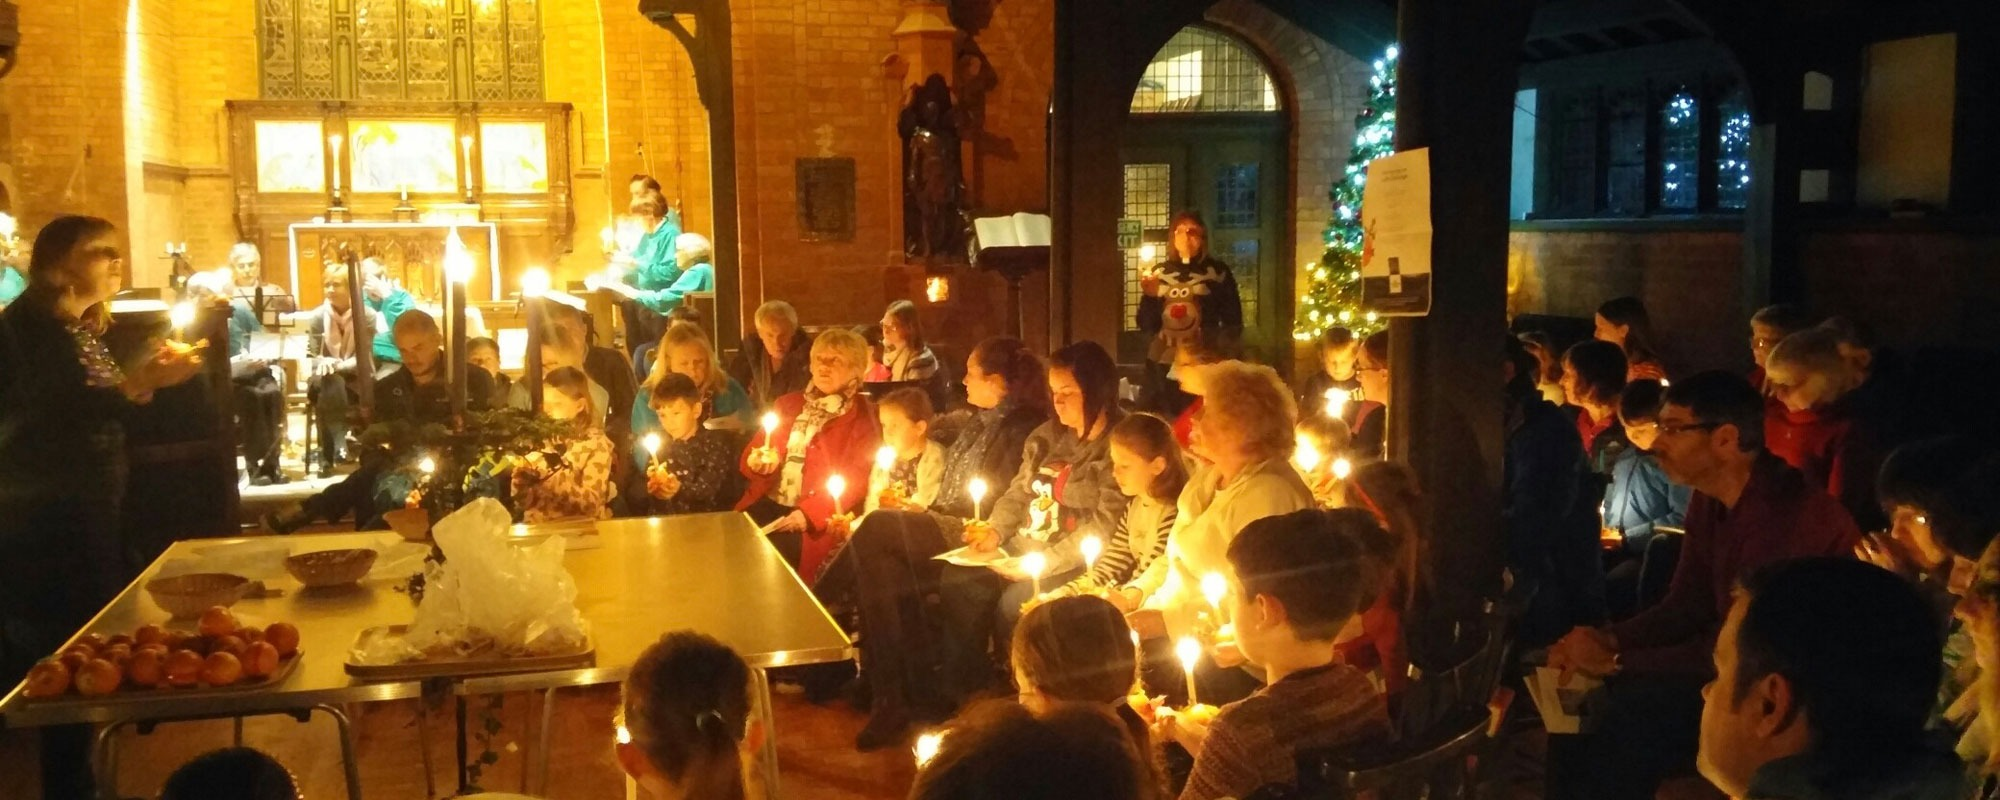 Christingle Service*Supporting the work of The Children's Society*